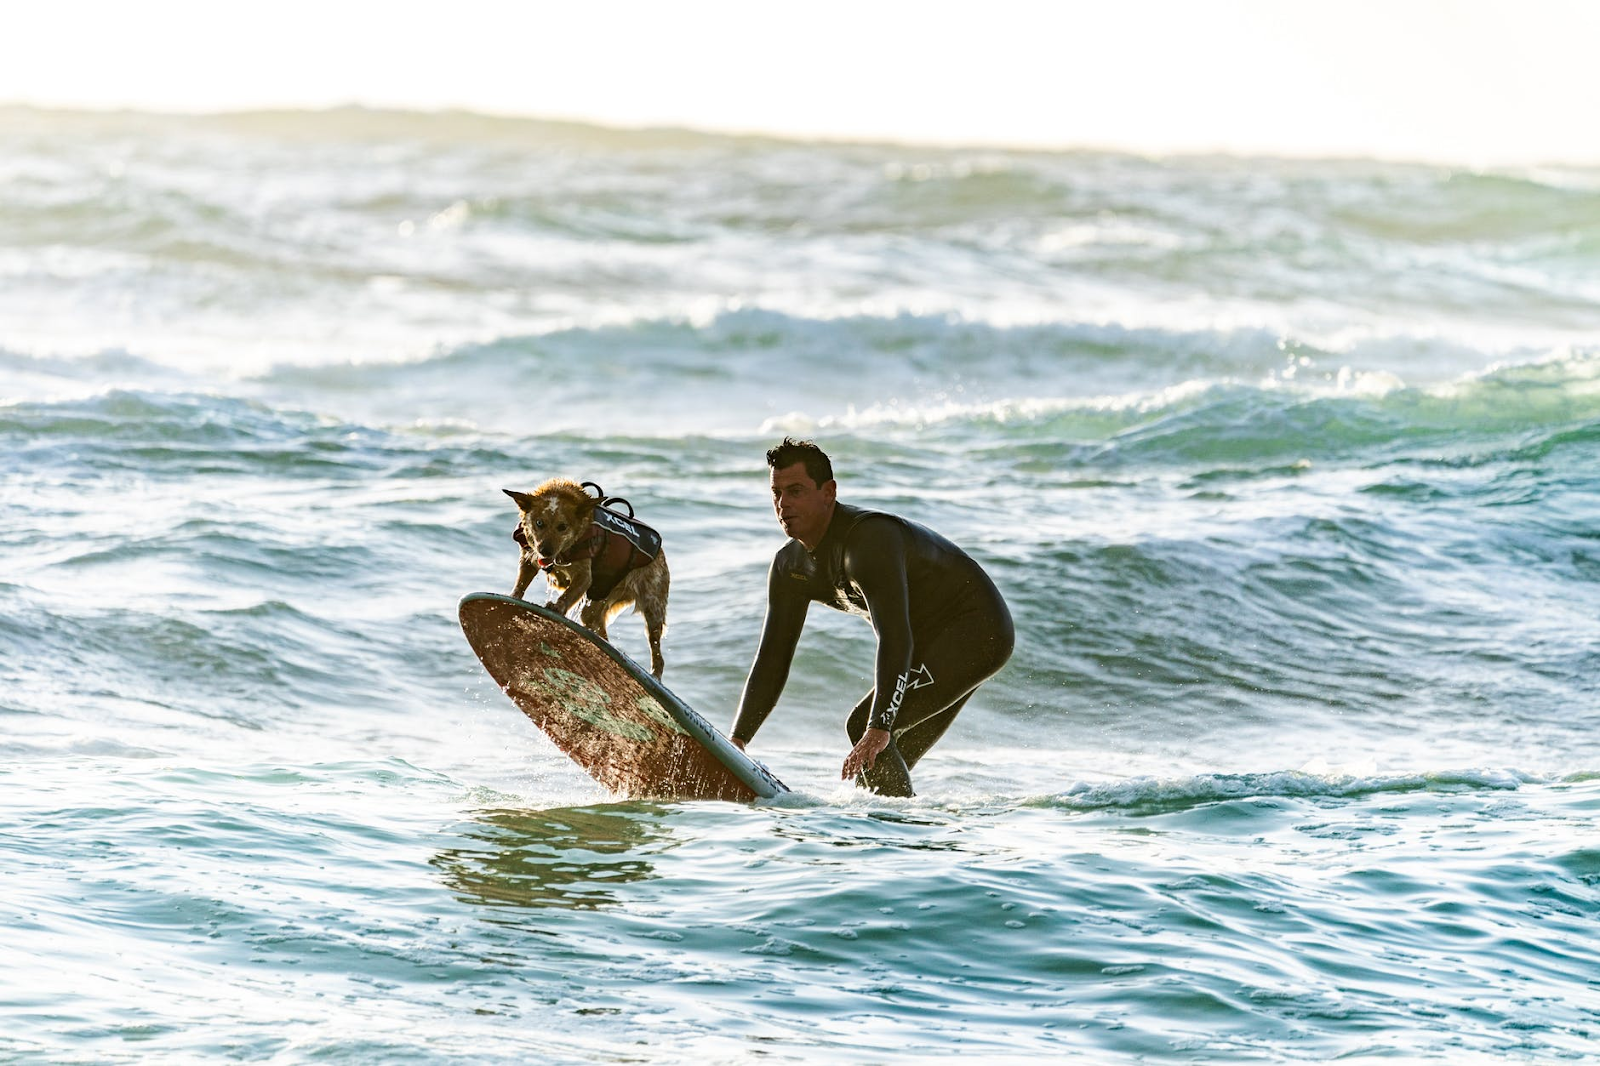 A man supervising a surfing dog